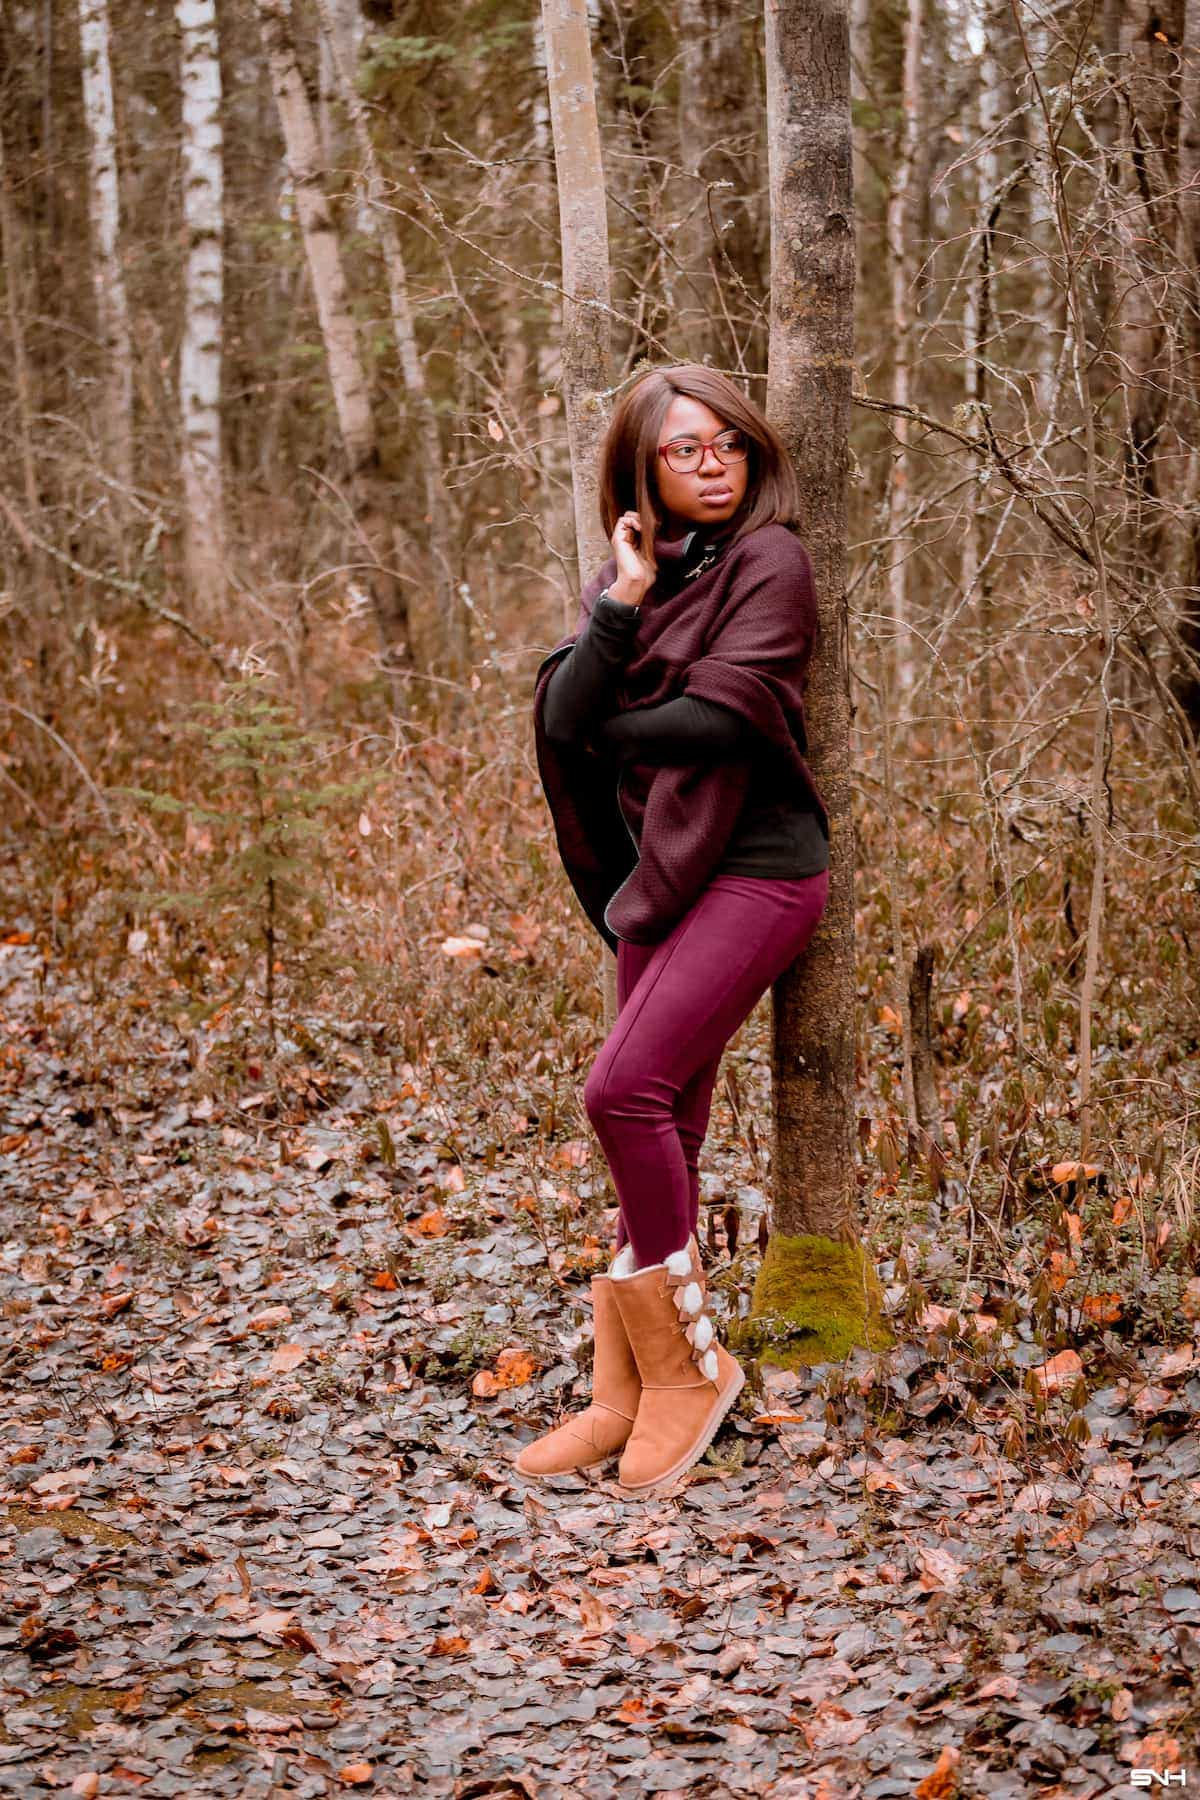 #uggboots #wintershoes Check out these epic list of the best quality Ugg alternatives that will keep you toasty warm in the winter for much cheaper. My favorite is...